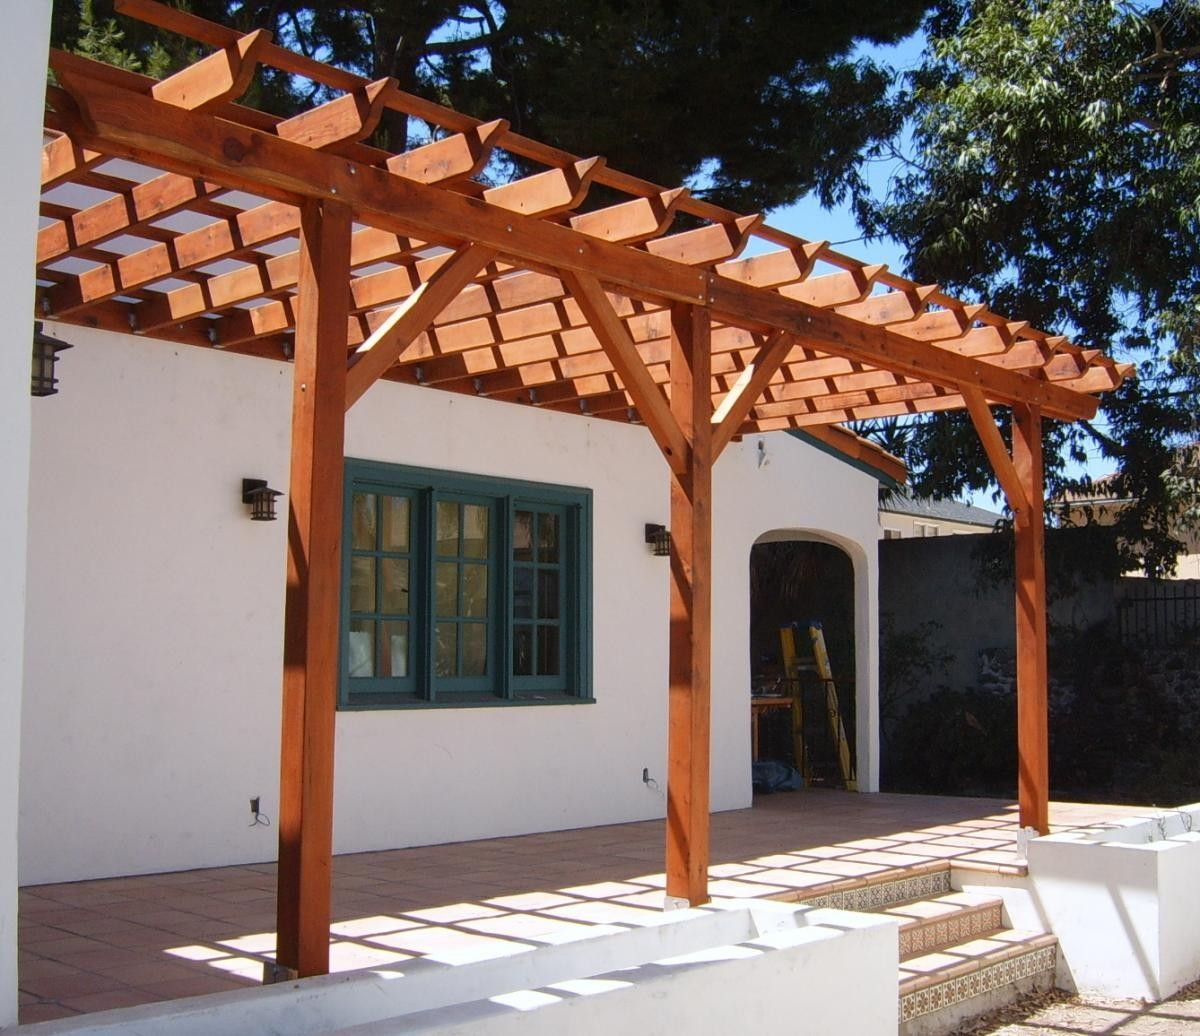 Simple Pergola Attached To House Pergola Attached To House Pergola Board Pinterest